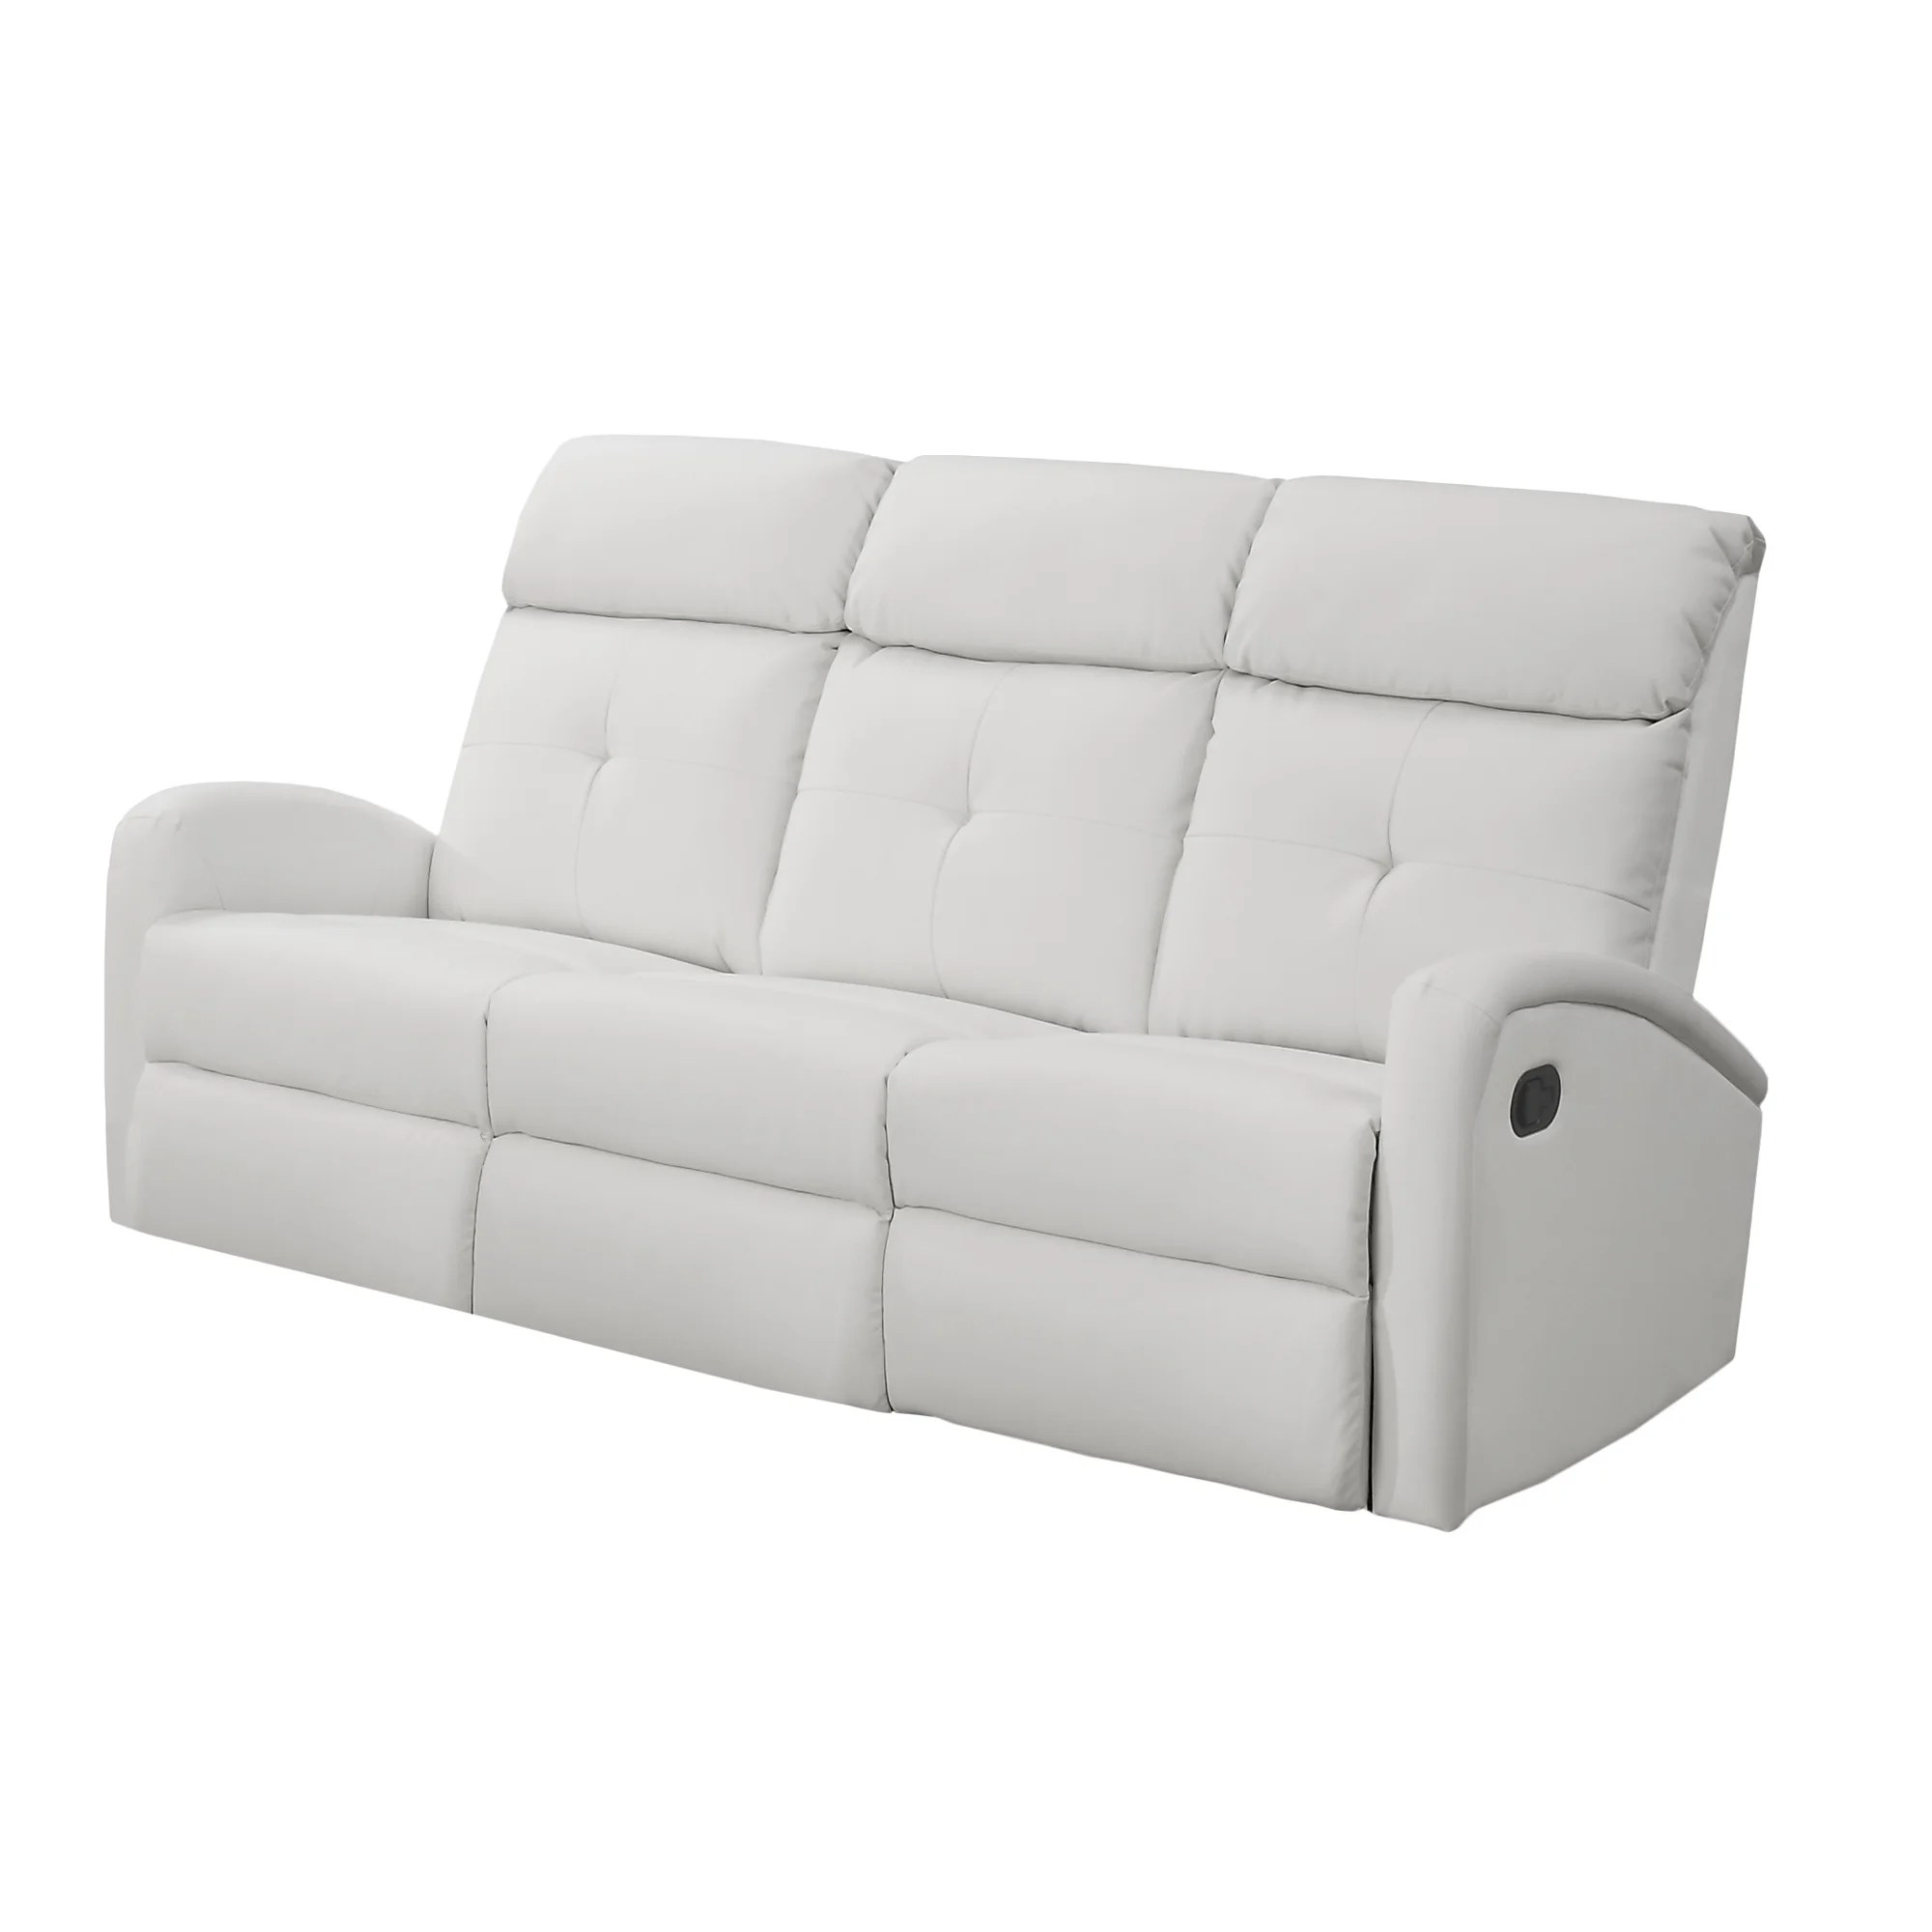 White Leather Recliners Monarch White Bonded Leather Reclining Sofa